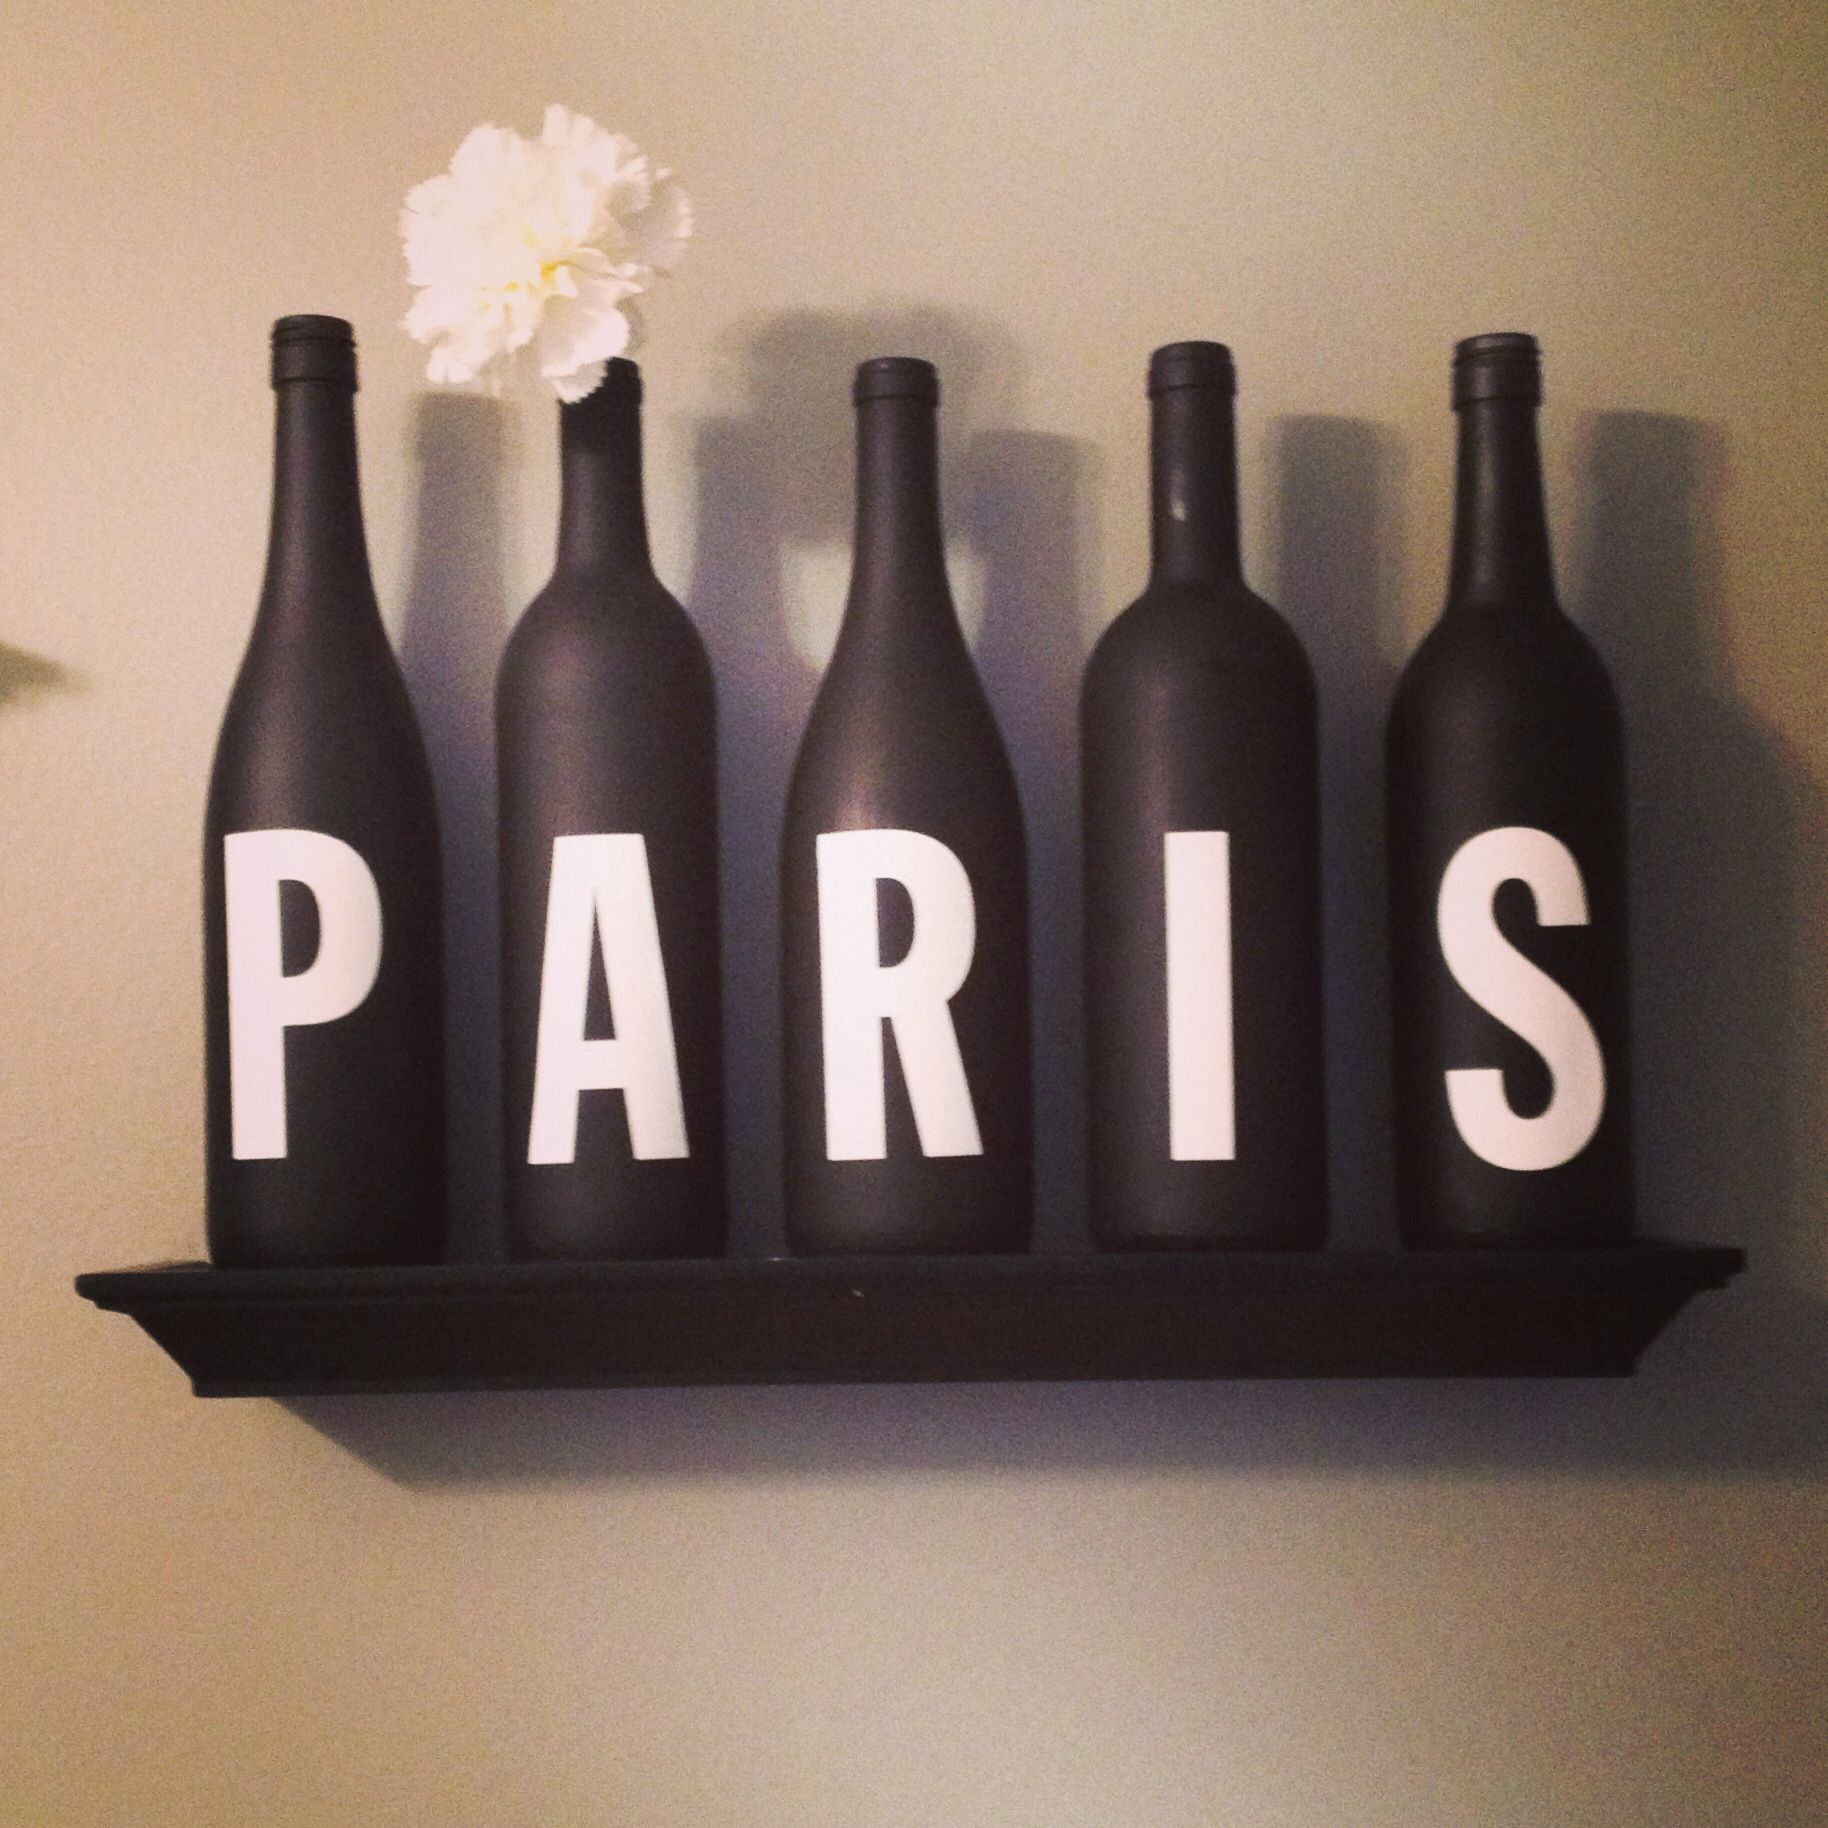 Paris Themed Bedroom Curtains Paris Themed Decor Winebottles Paris Diy Half Bath